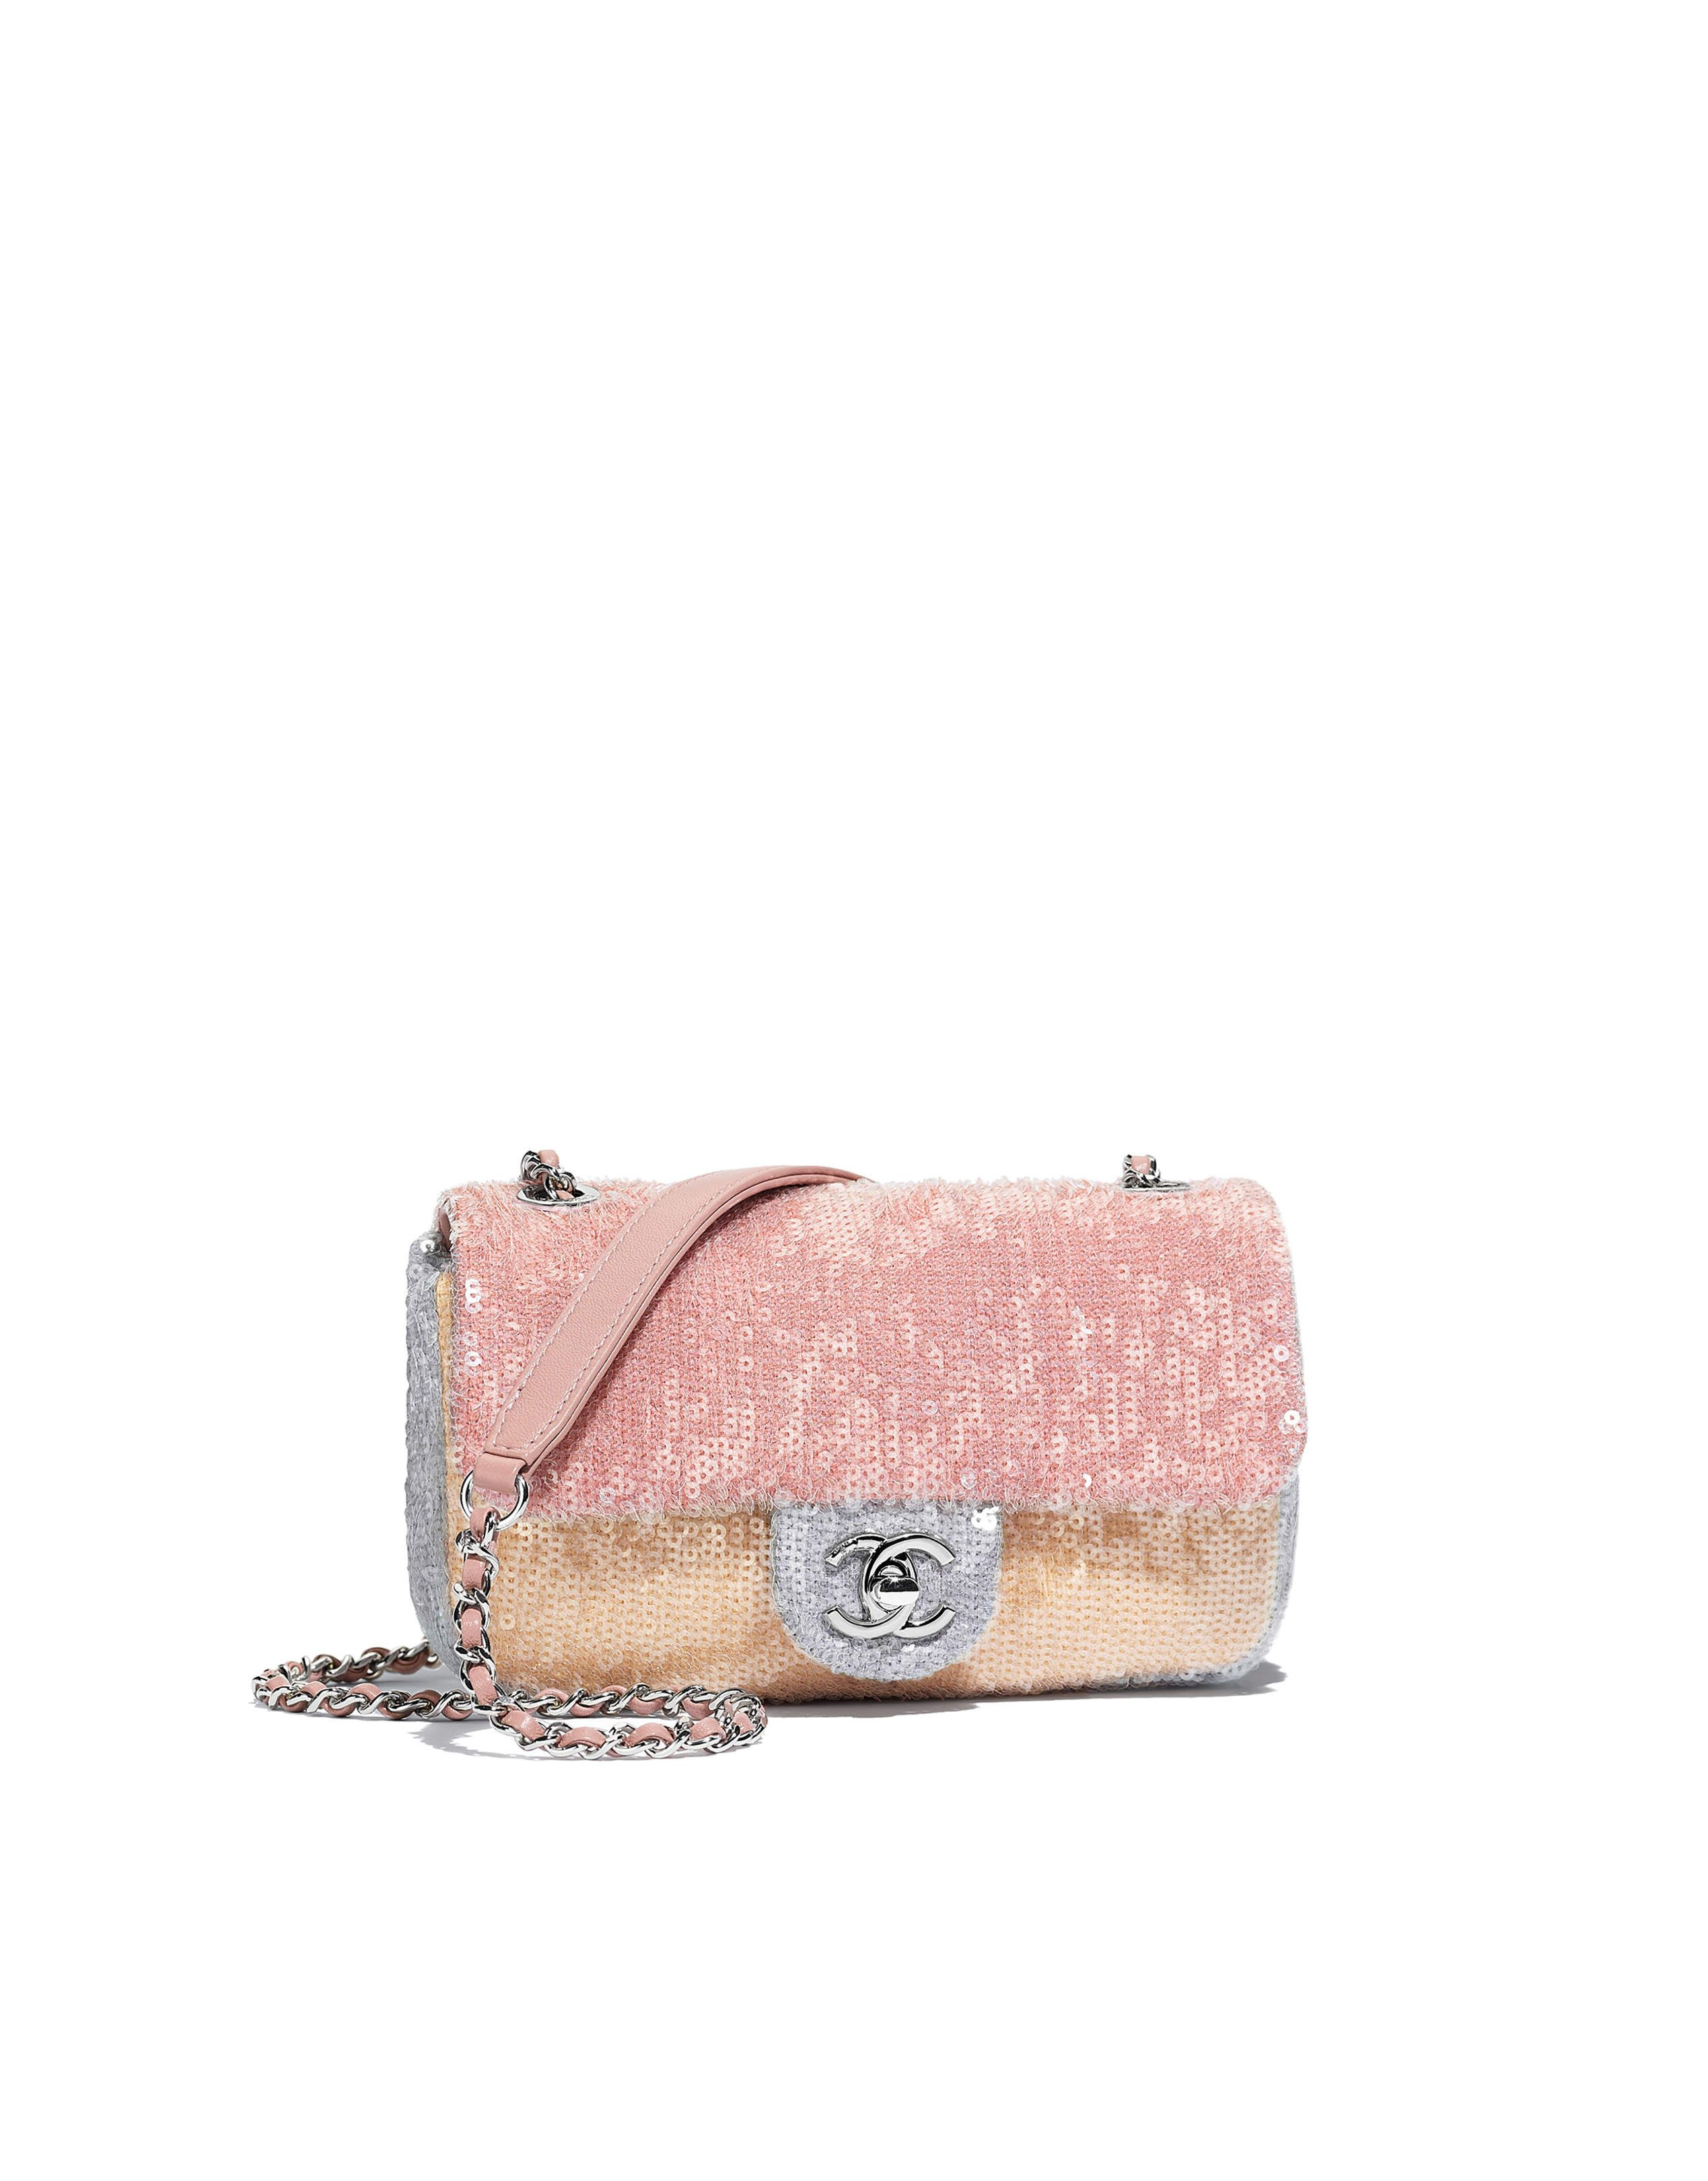 c8ee59db608 Chanel - SS2018